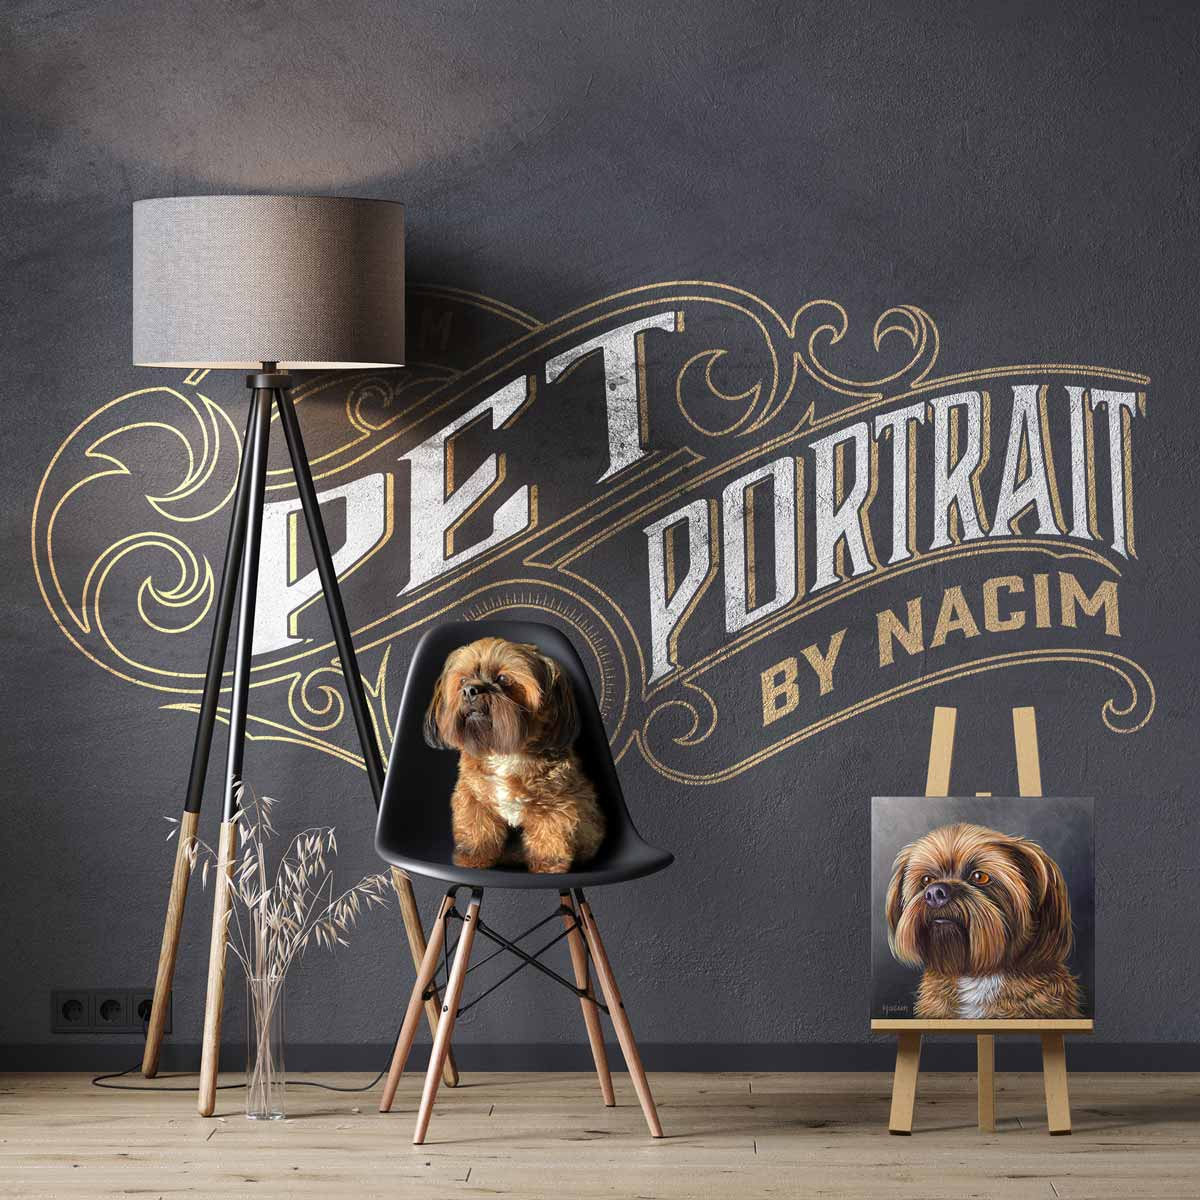 Custom painting of pet portrait in acrylics on gallery wrapped canvas created by Nacim Ruintan-Tehrani. The image shows the artist's dog, Leo, sitting in a chair, waiting for his portrait to be done. Commissioned artworks accepted.